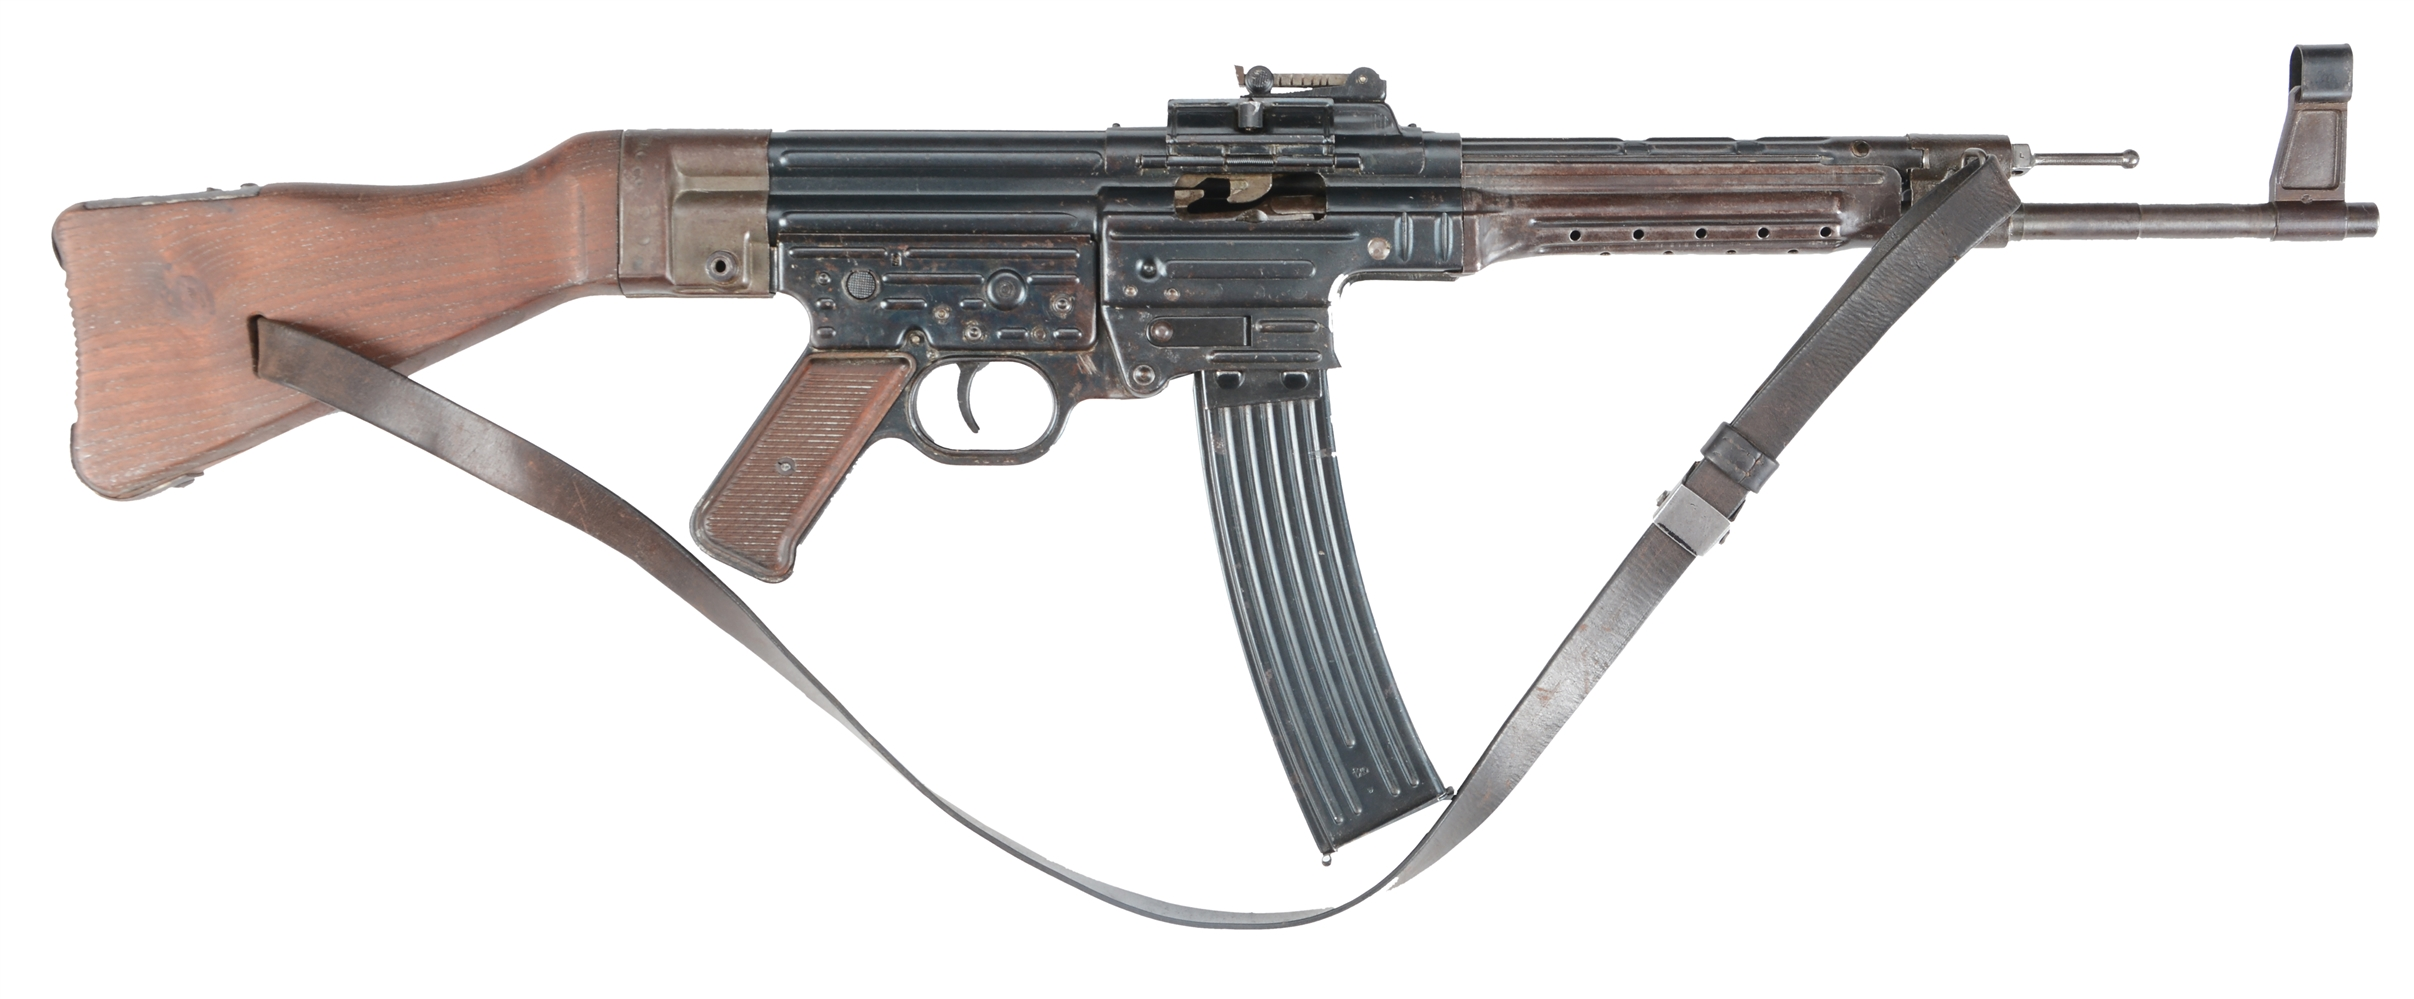 (N) HIGHLY COLLECTIBLE 1945 DATE MATCHING GERMAN WW2 STURMGEWEHR STG 44 MACHINE GUN (CURIO & RELIC)